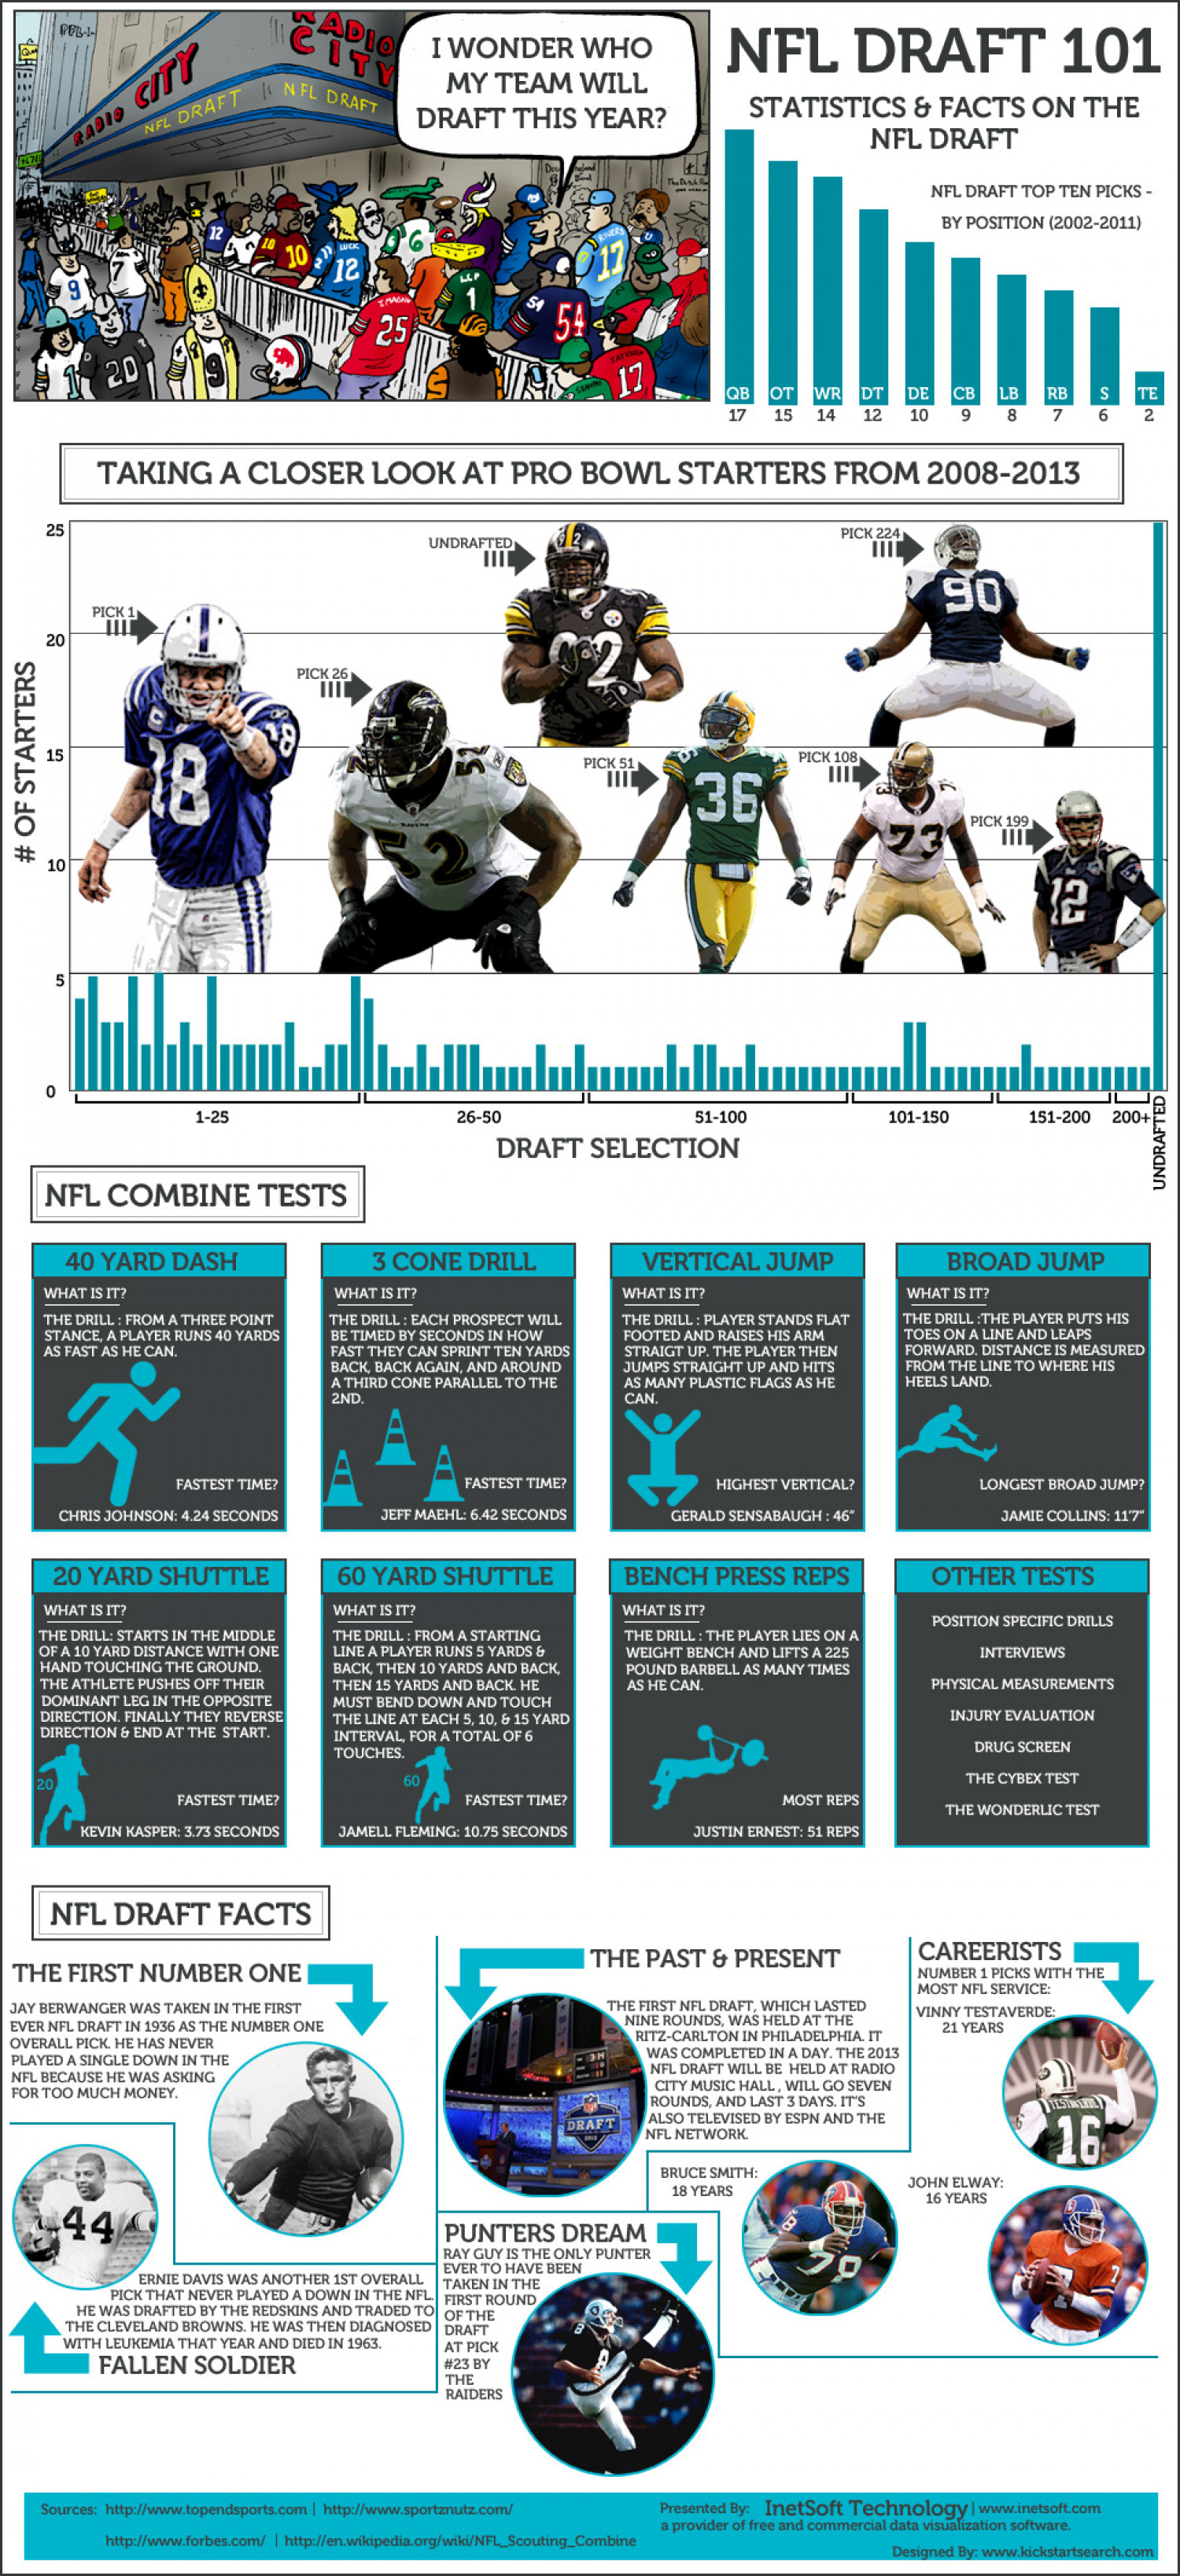 NFL Draft 101 Infographic